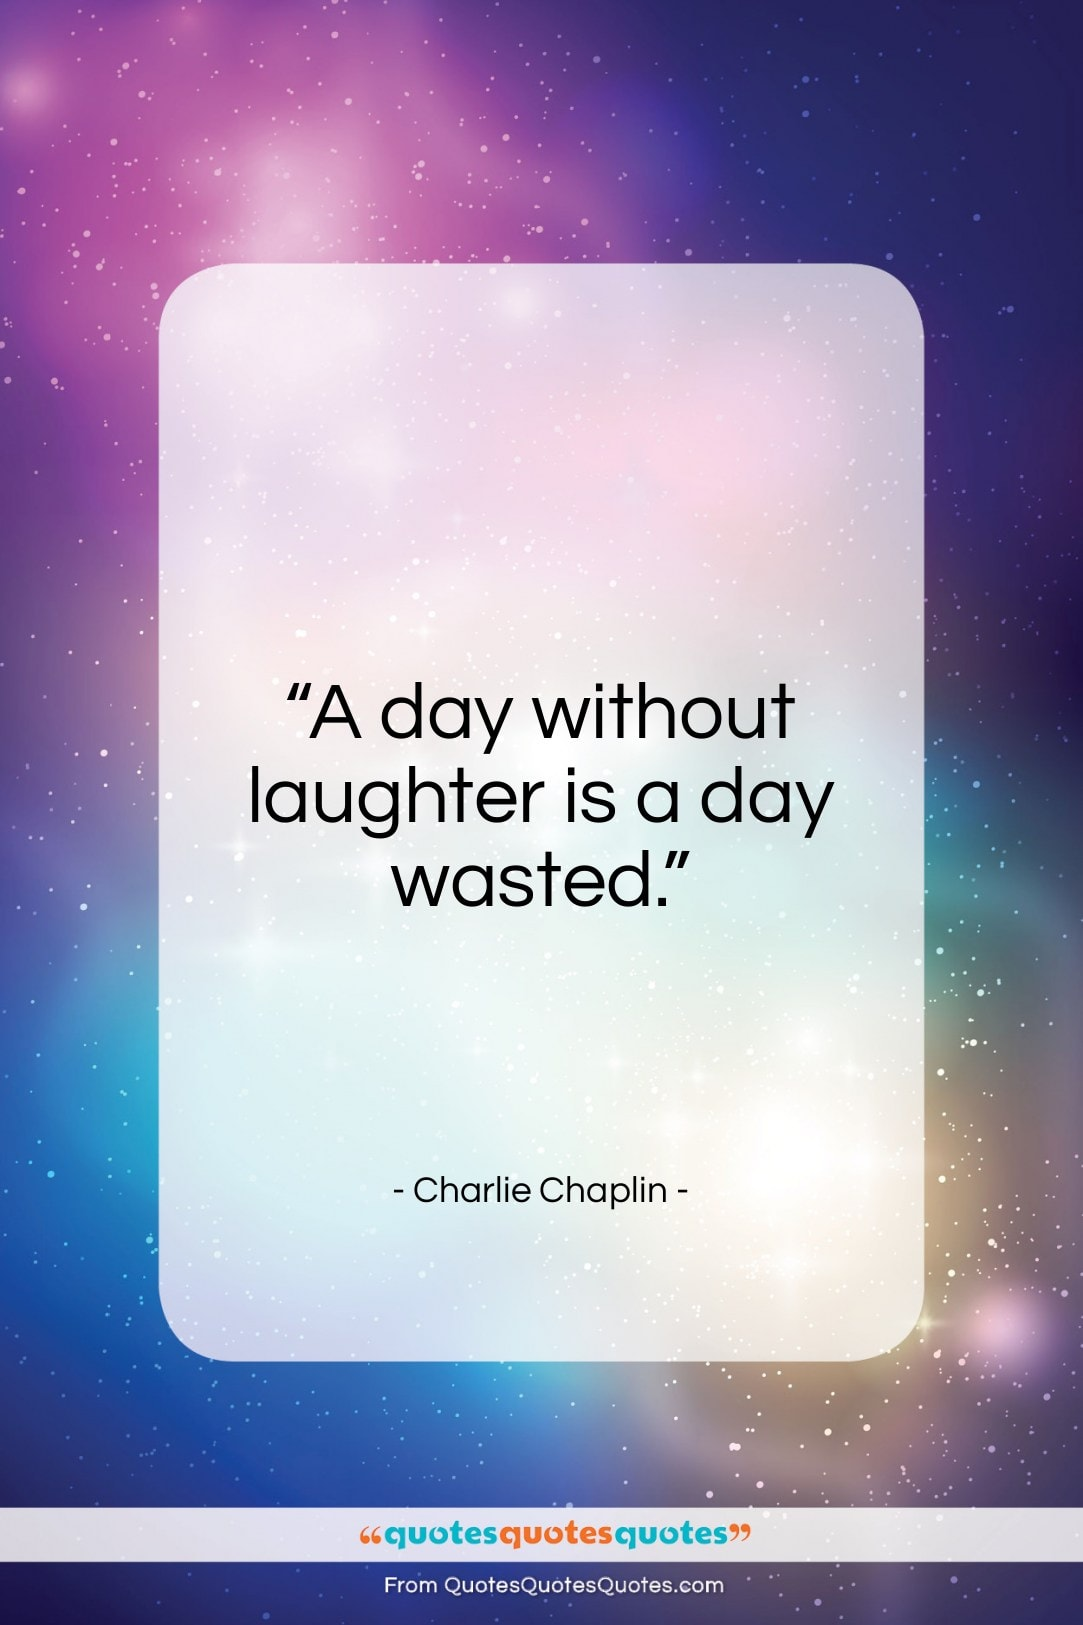 Get The Whole Charlie Chaplin Quote A Day Without Laughter